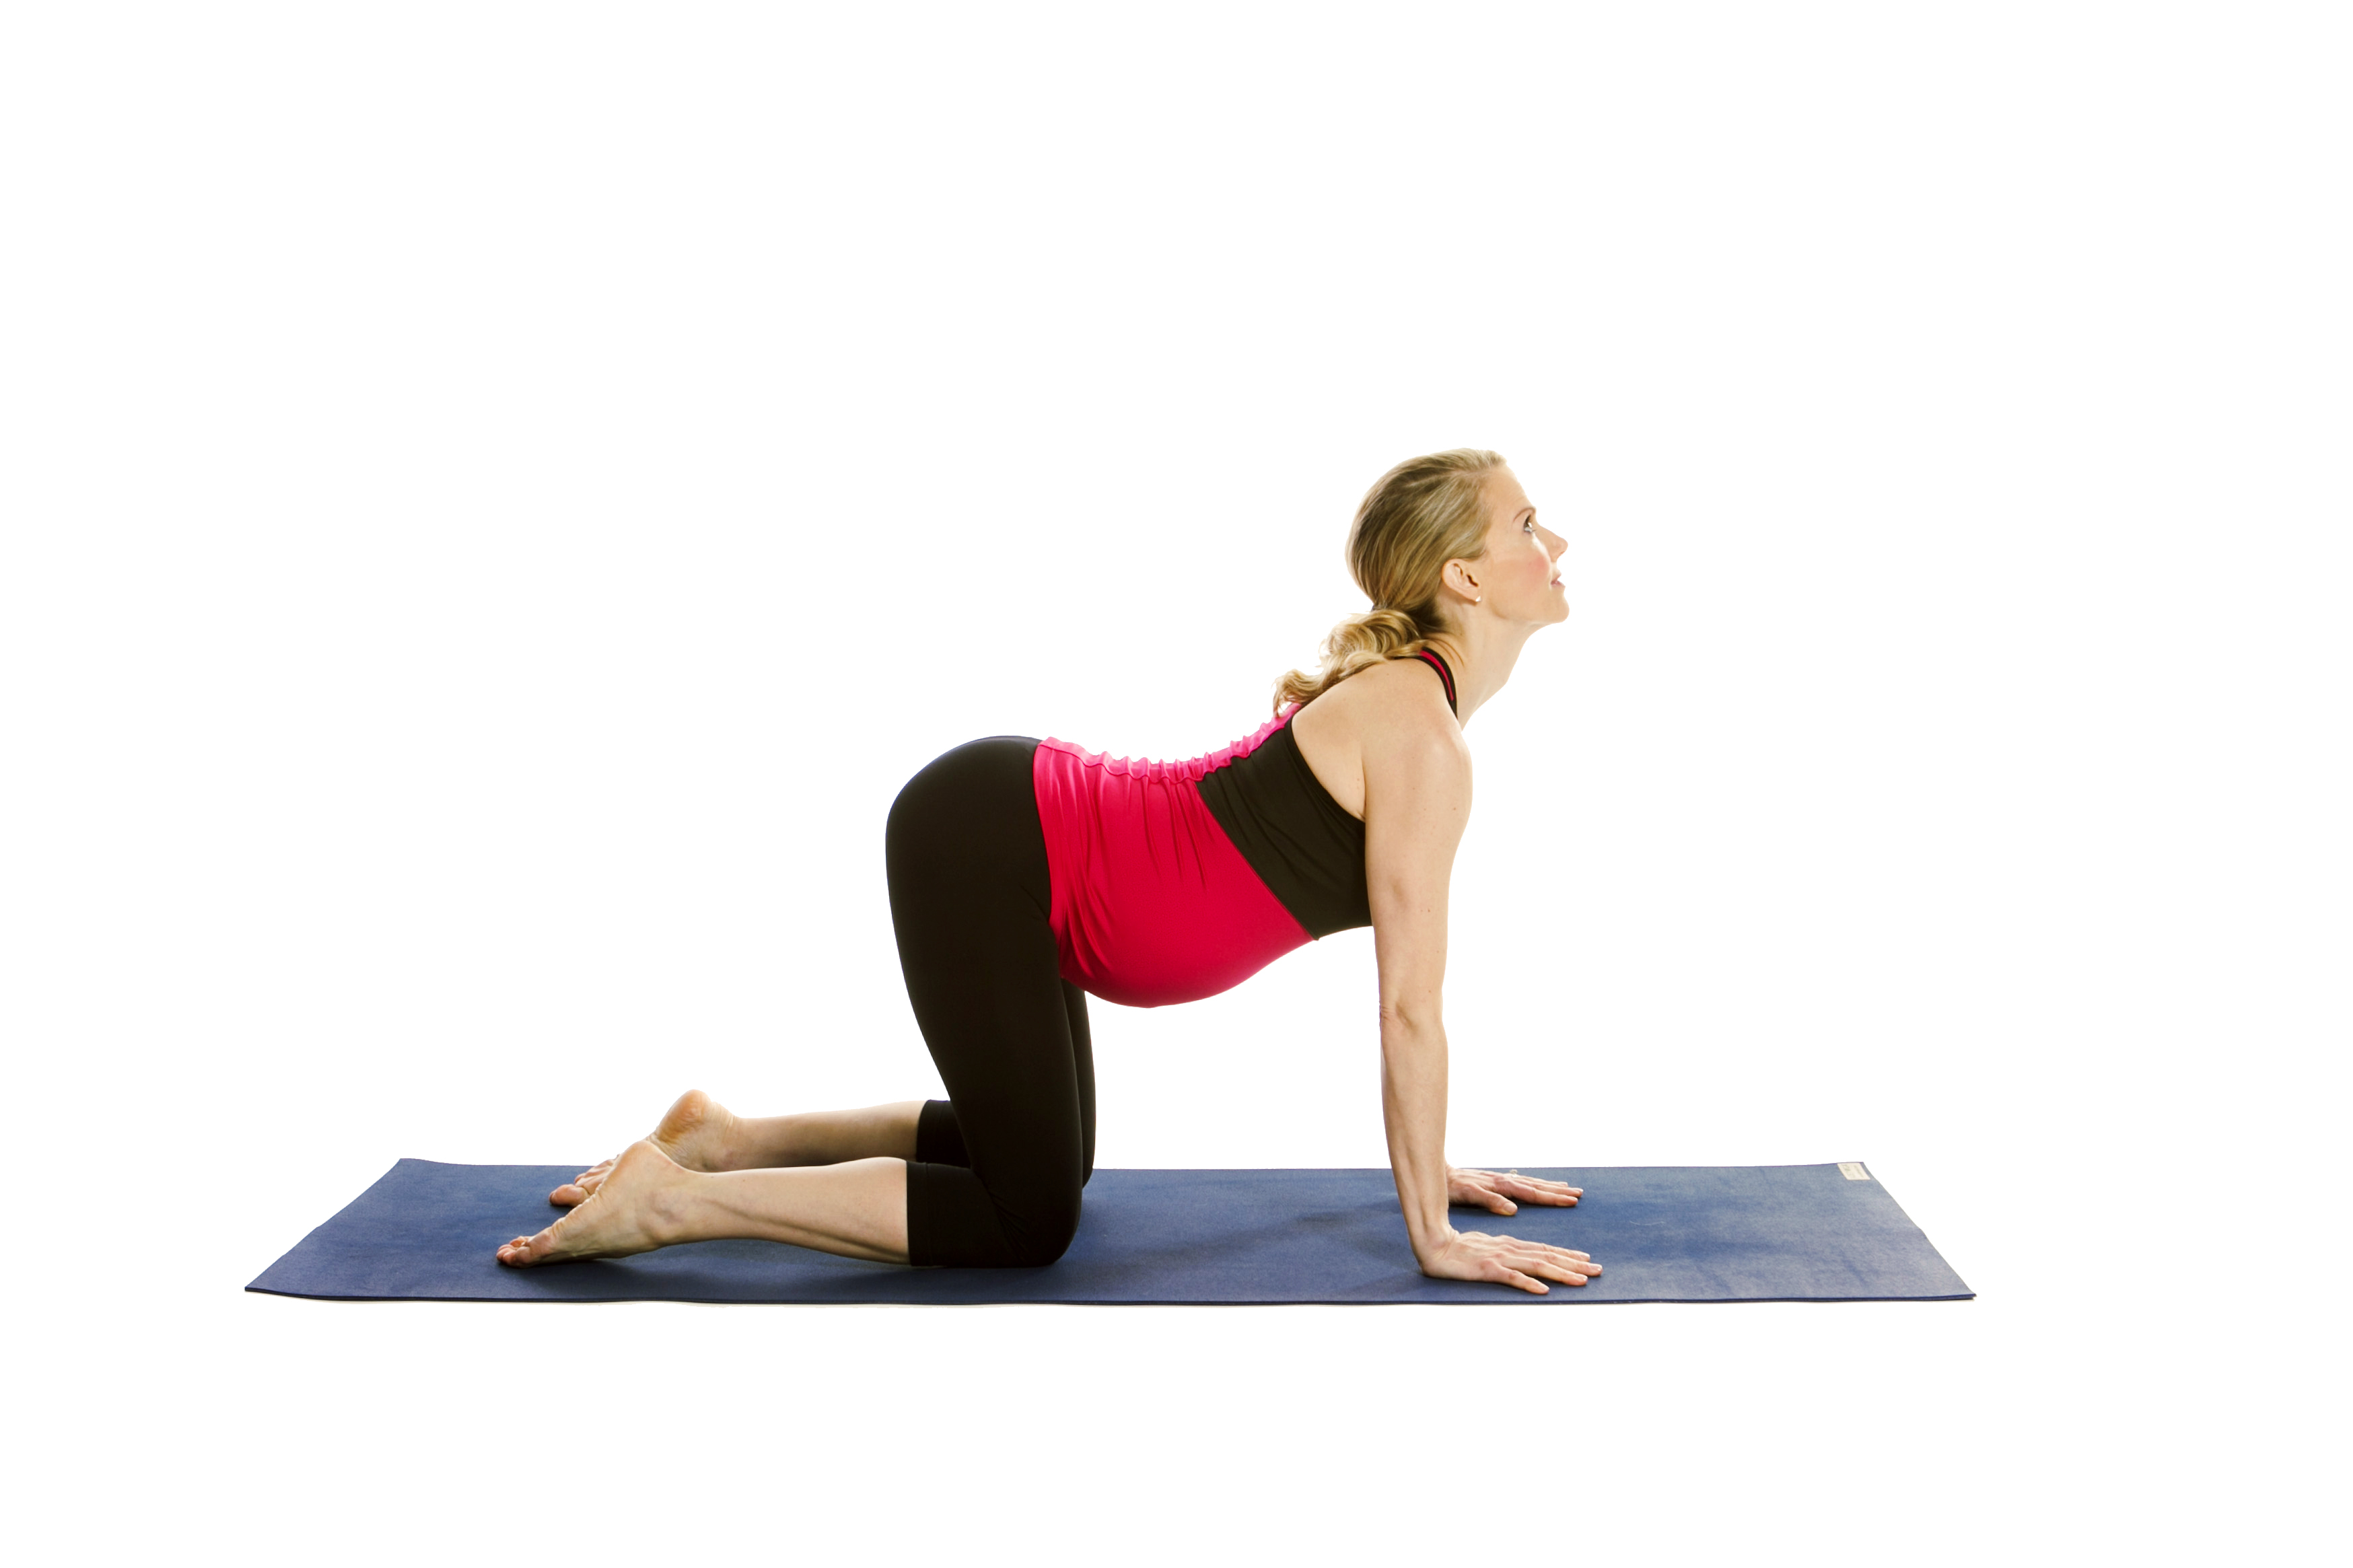 Yoga Poses to Help with Labor and Delivery - Kristin McGee